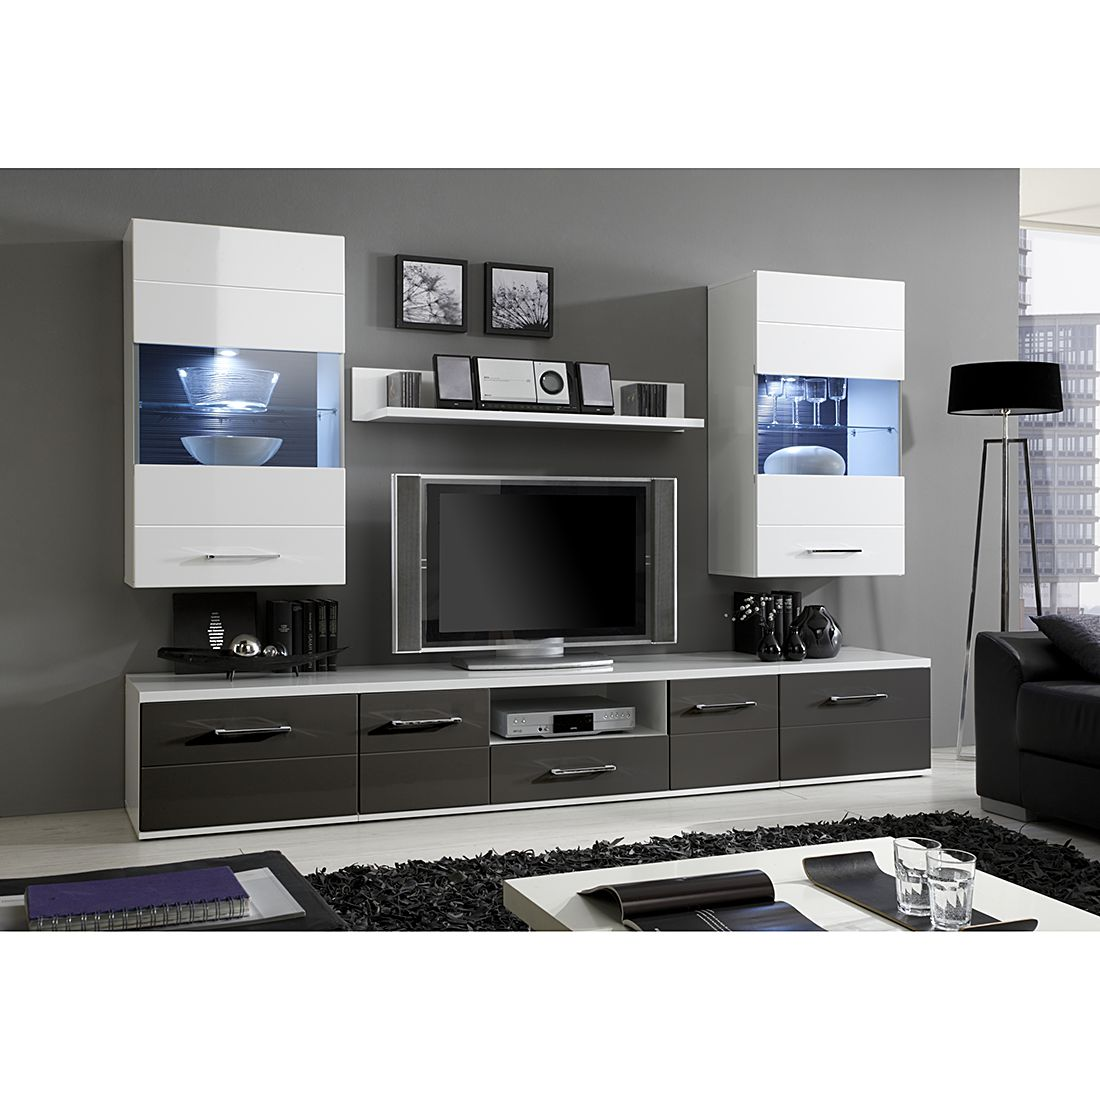 wohnwand hochglanz grau g nstig kaufen. Black Bedroom Furniture Sets. Home Design Ideas